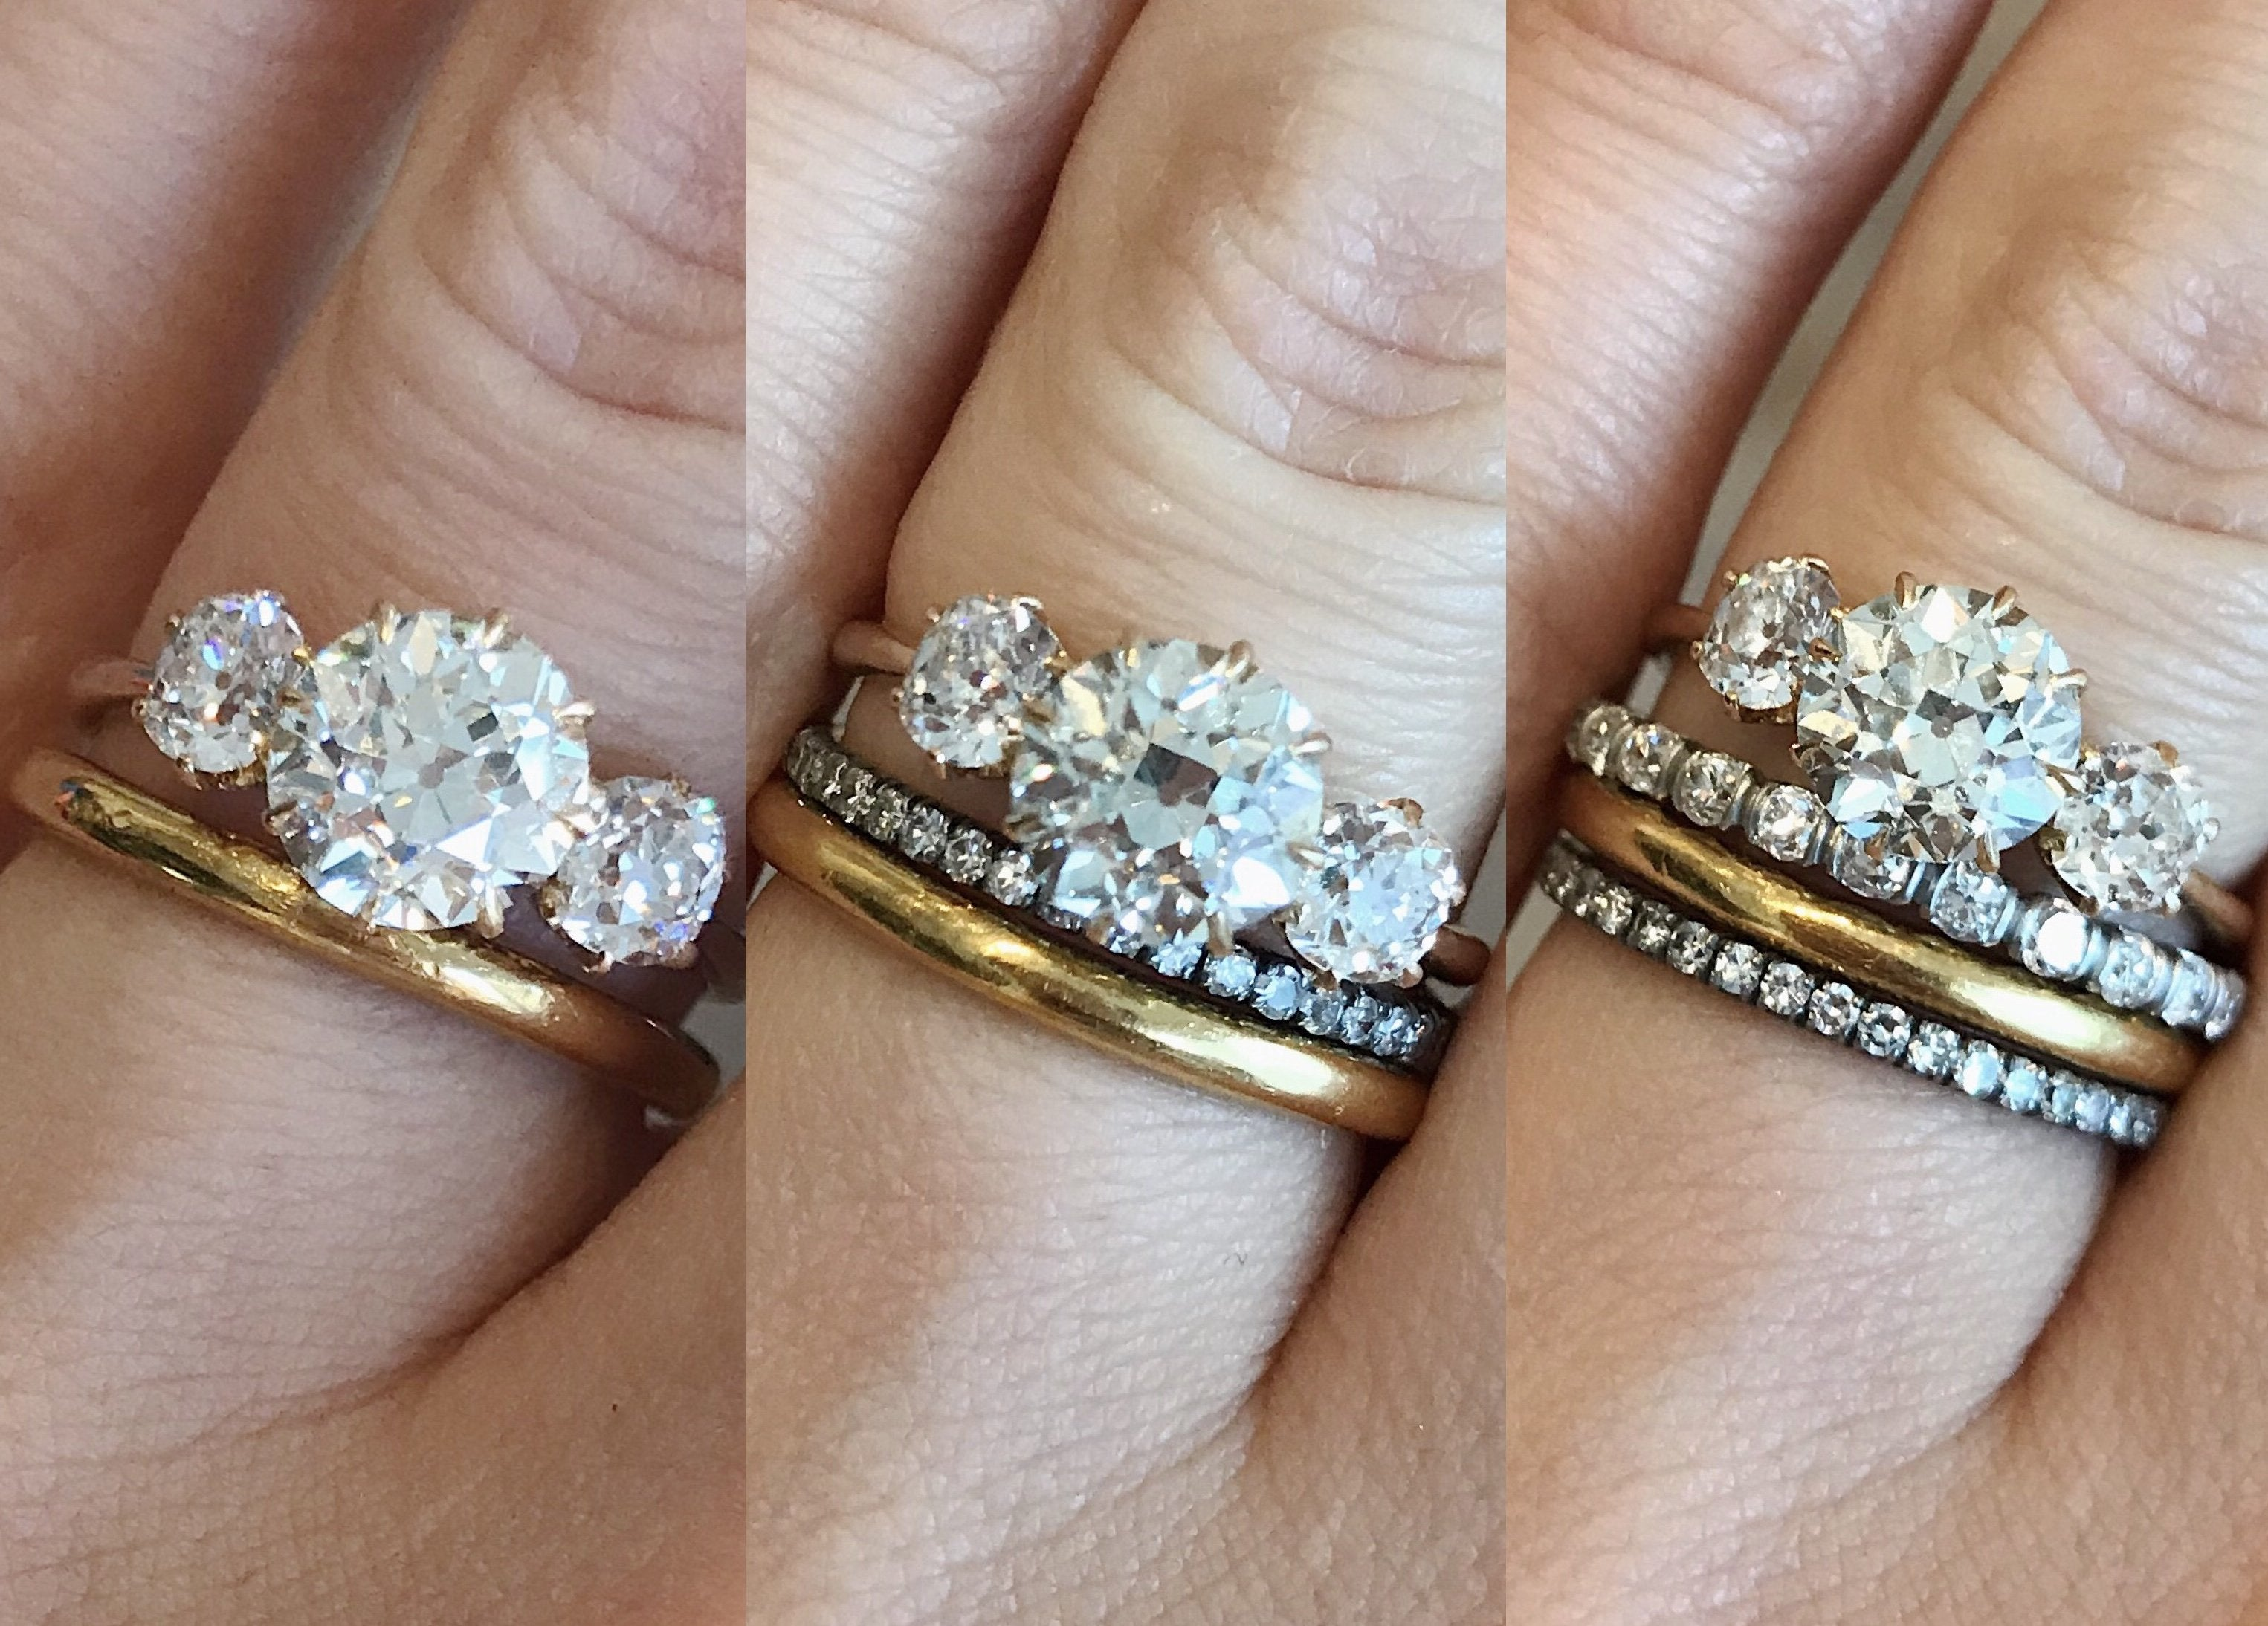 Engagement Ring And Wedding Band.Stacked Wedding Bands With Three Stone Engagement Ring